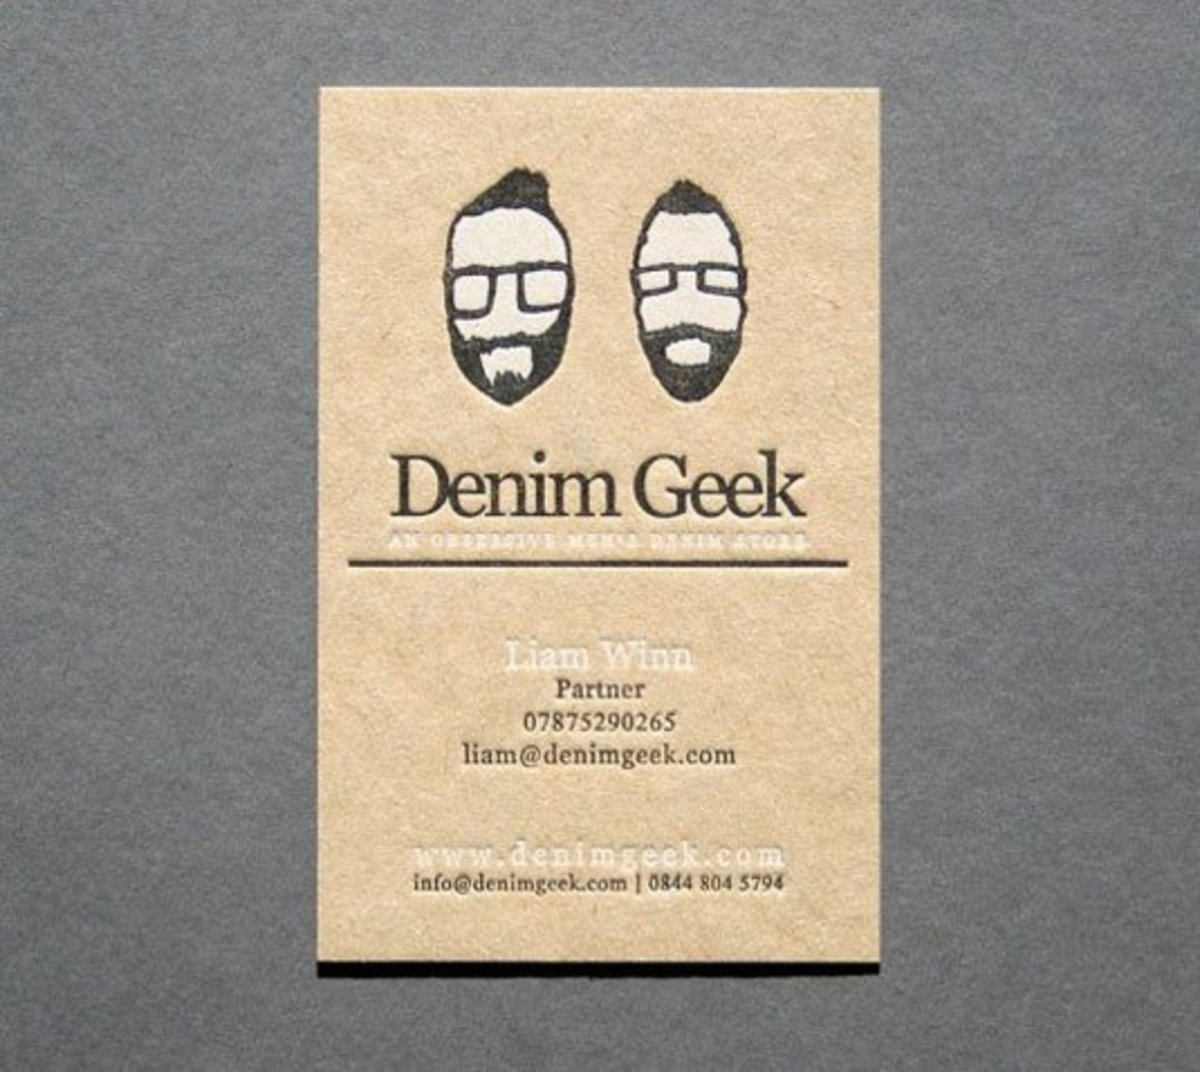 denimgeek